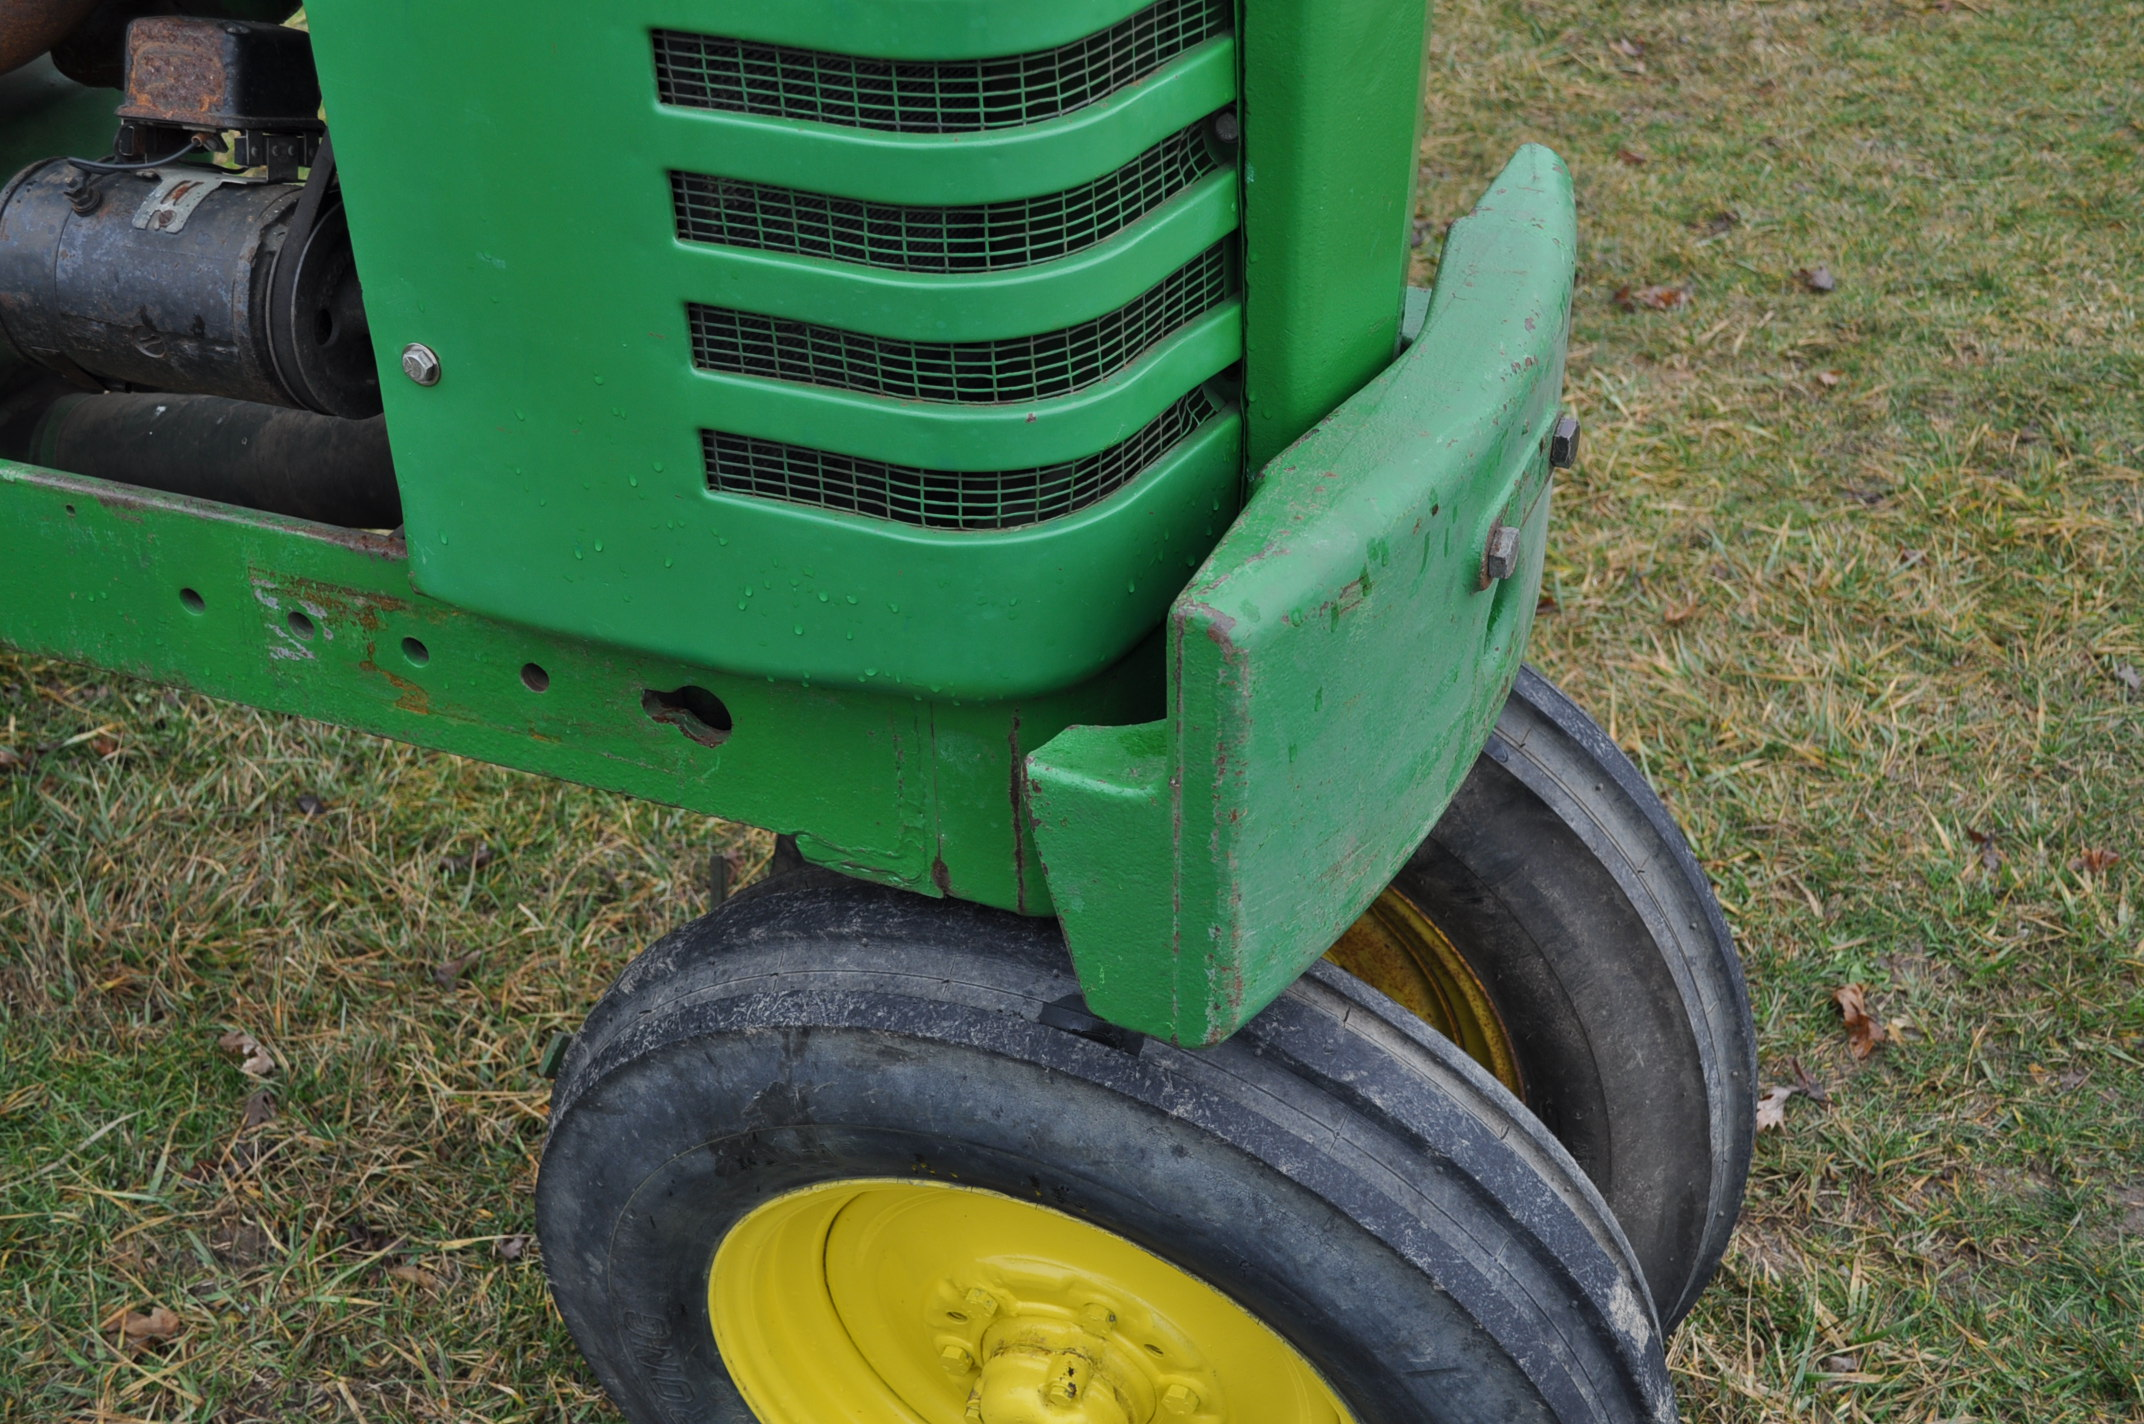 1942 John Deere Styled A, New 12.4-38 rear tires, narrow front, 540 pto - Image 9 of 15